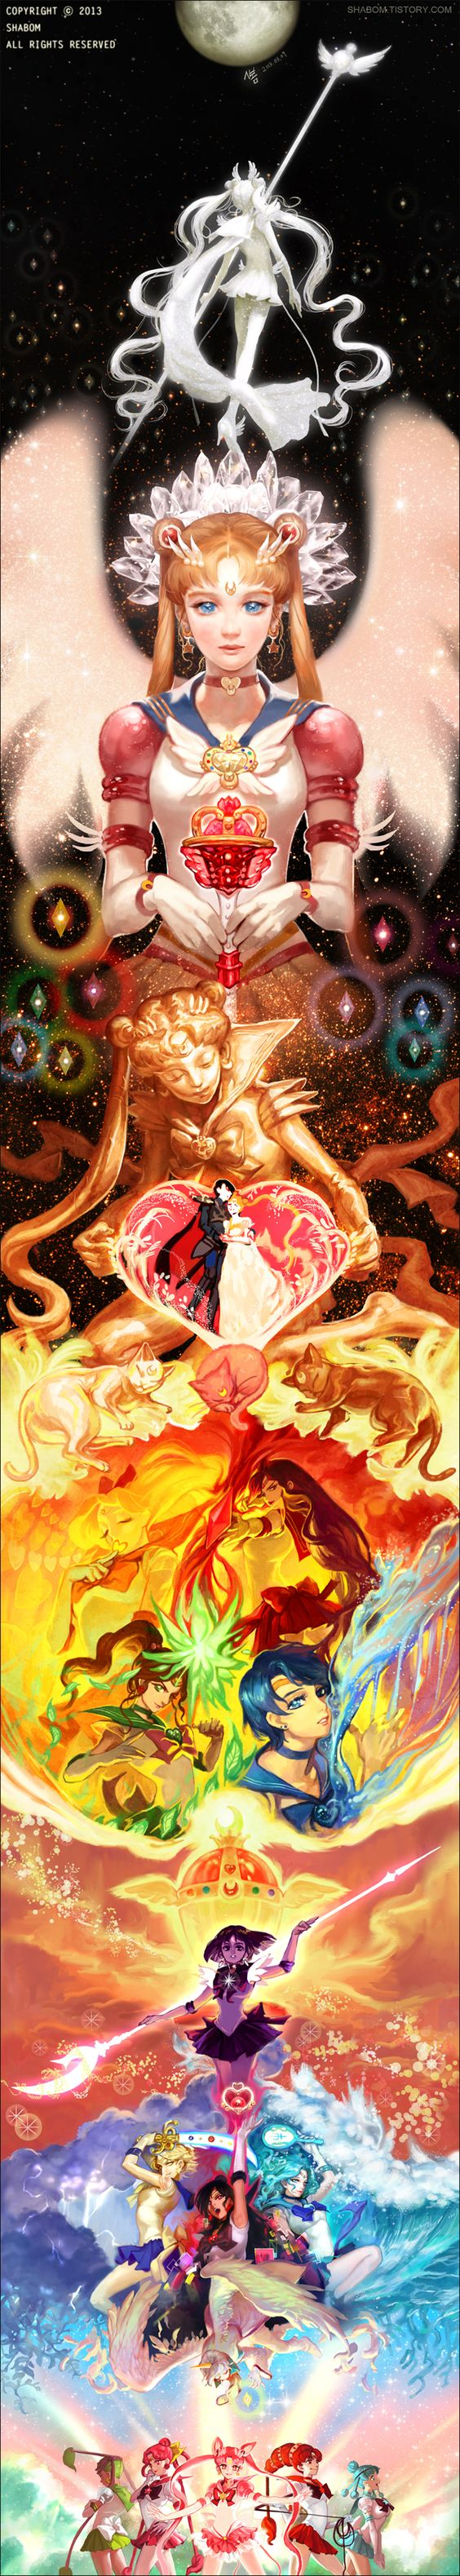 Awesome Sailor Moon art featuring Sailor Moon, the Inners, Outers, Asteroids, Mini Moon and Sailor Cosmos!